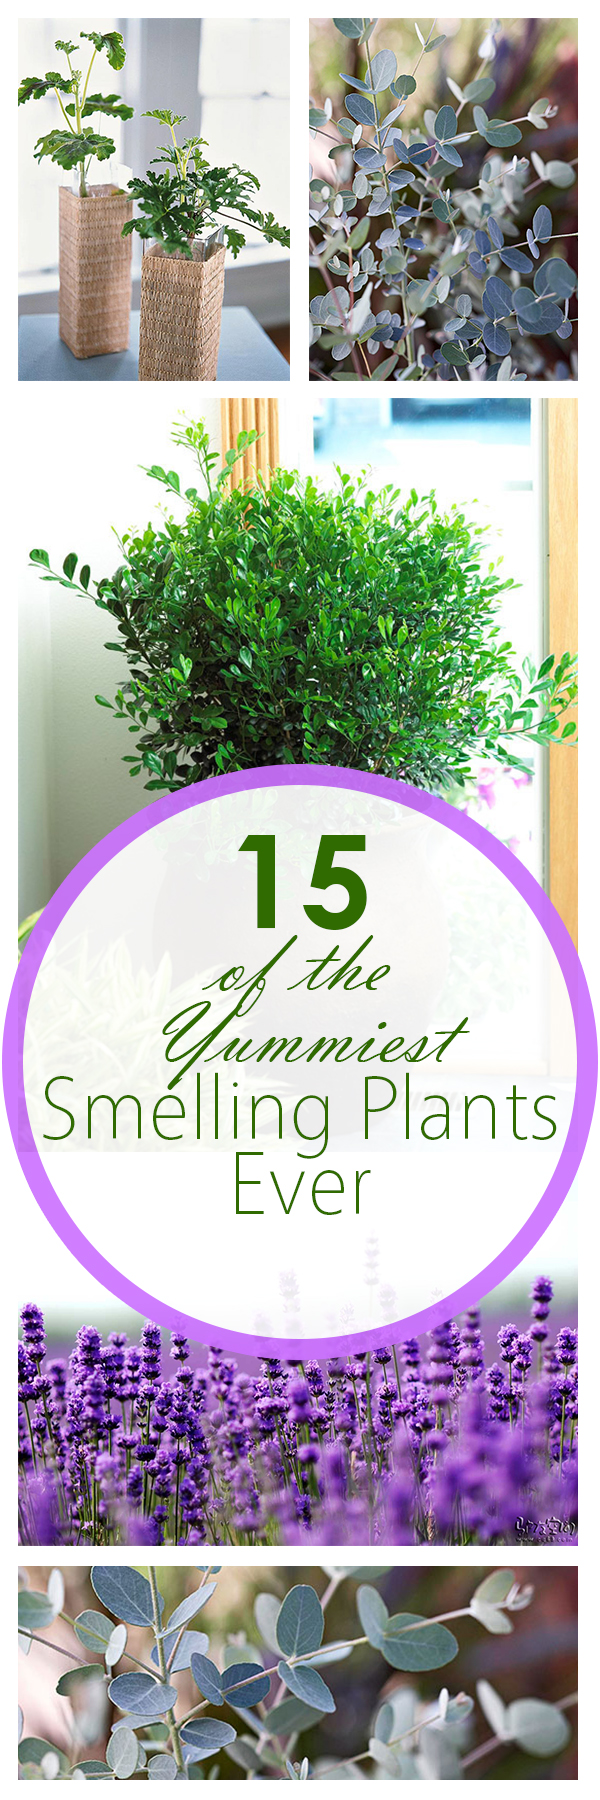 Best Smelling Plants, Garden Ideas, Gardening Ideas, Plants, Plant Care, Indoor Gardening, Indoor Garden, Houseplant Care